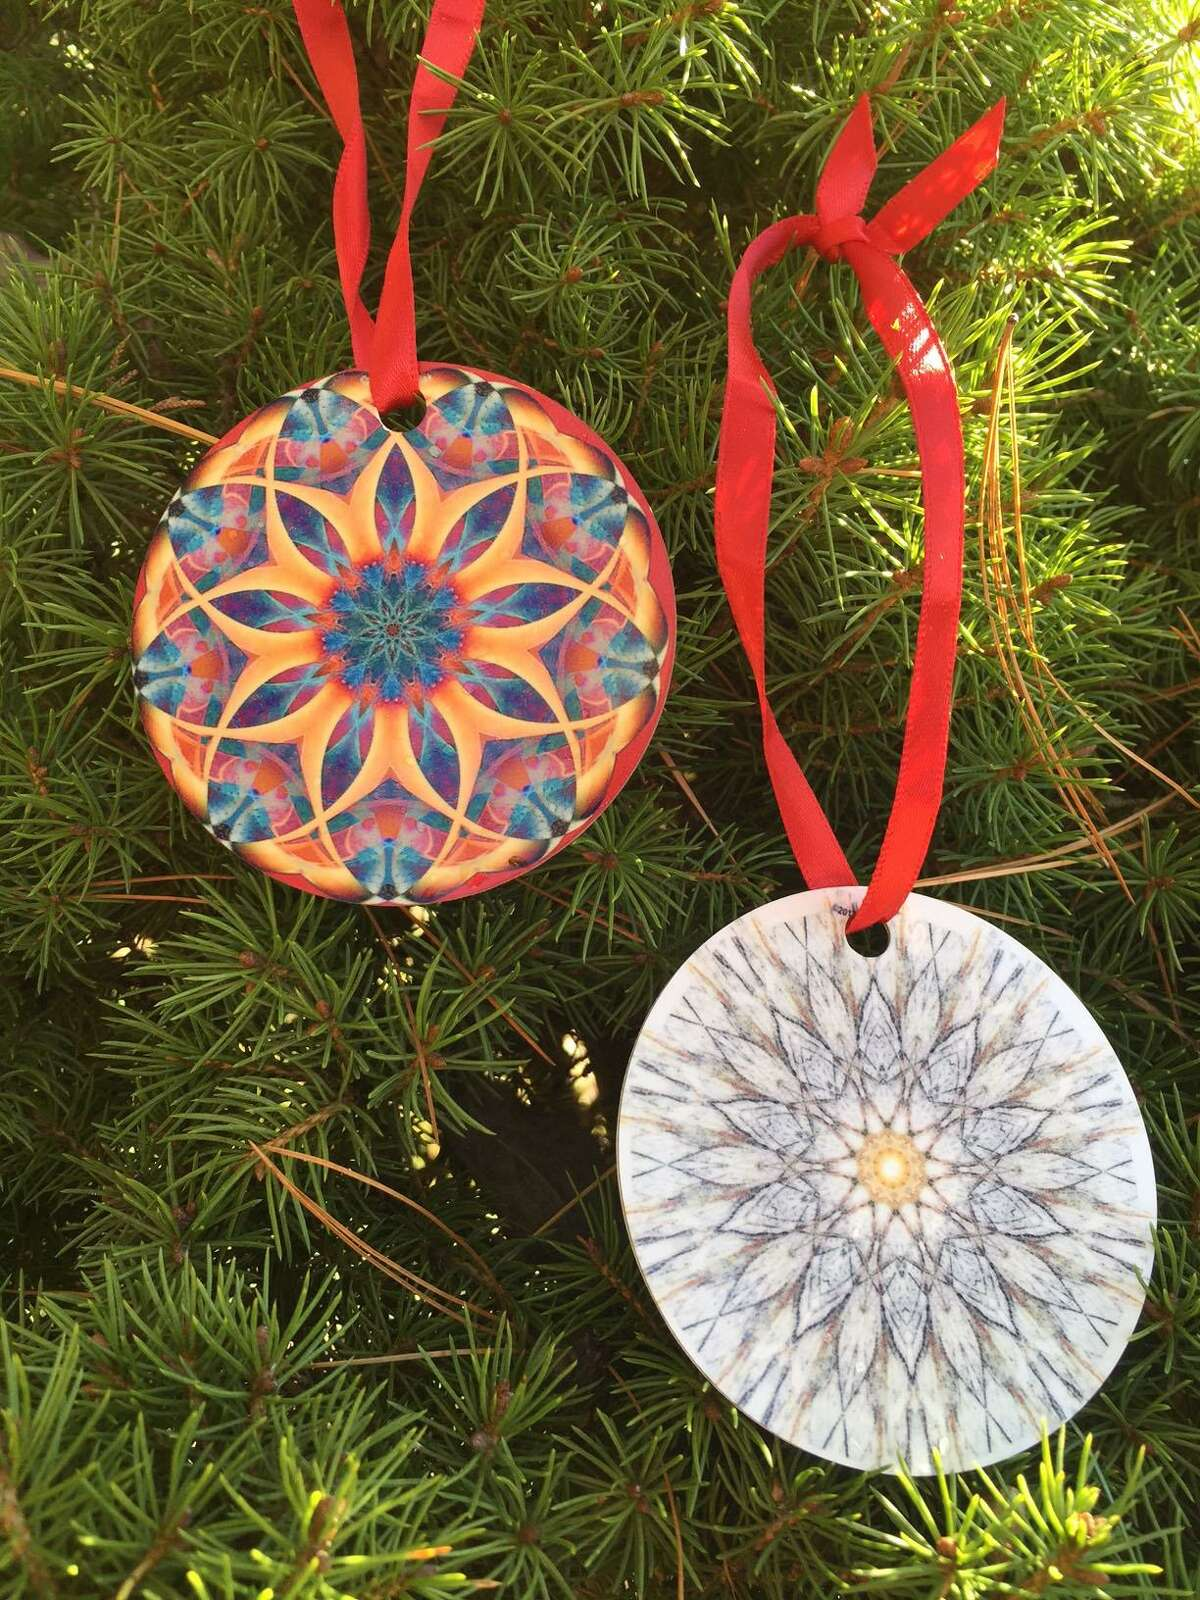 Sherman Library in Sherman Center is exhibiting a holiday show featuring photographs by Barbara Soares and Jim Stasiak through Jan. 25. Above are ornaments by the artists.